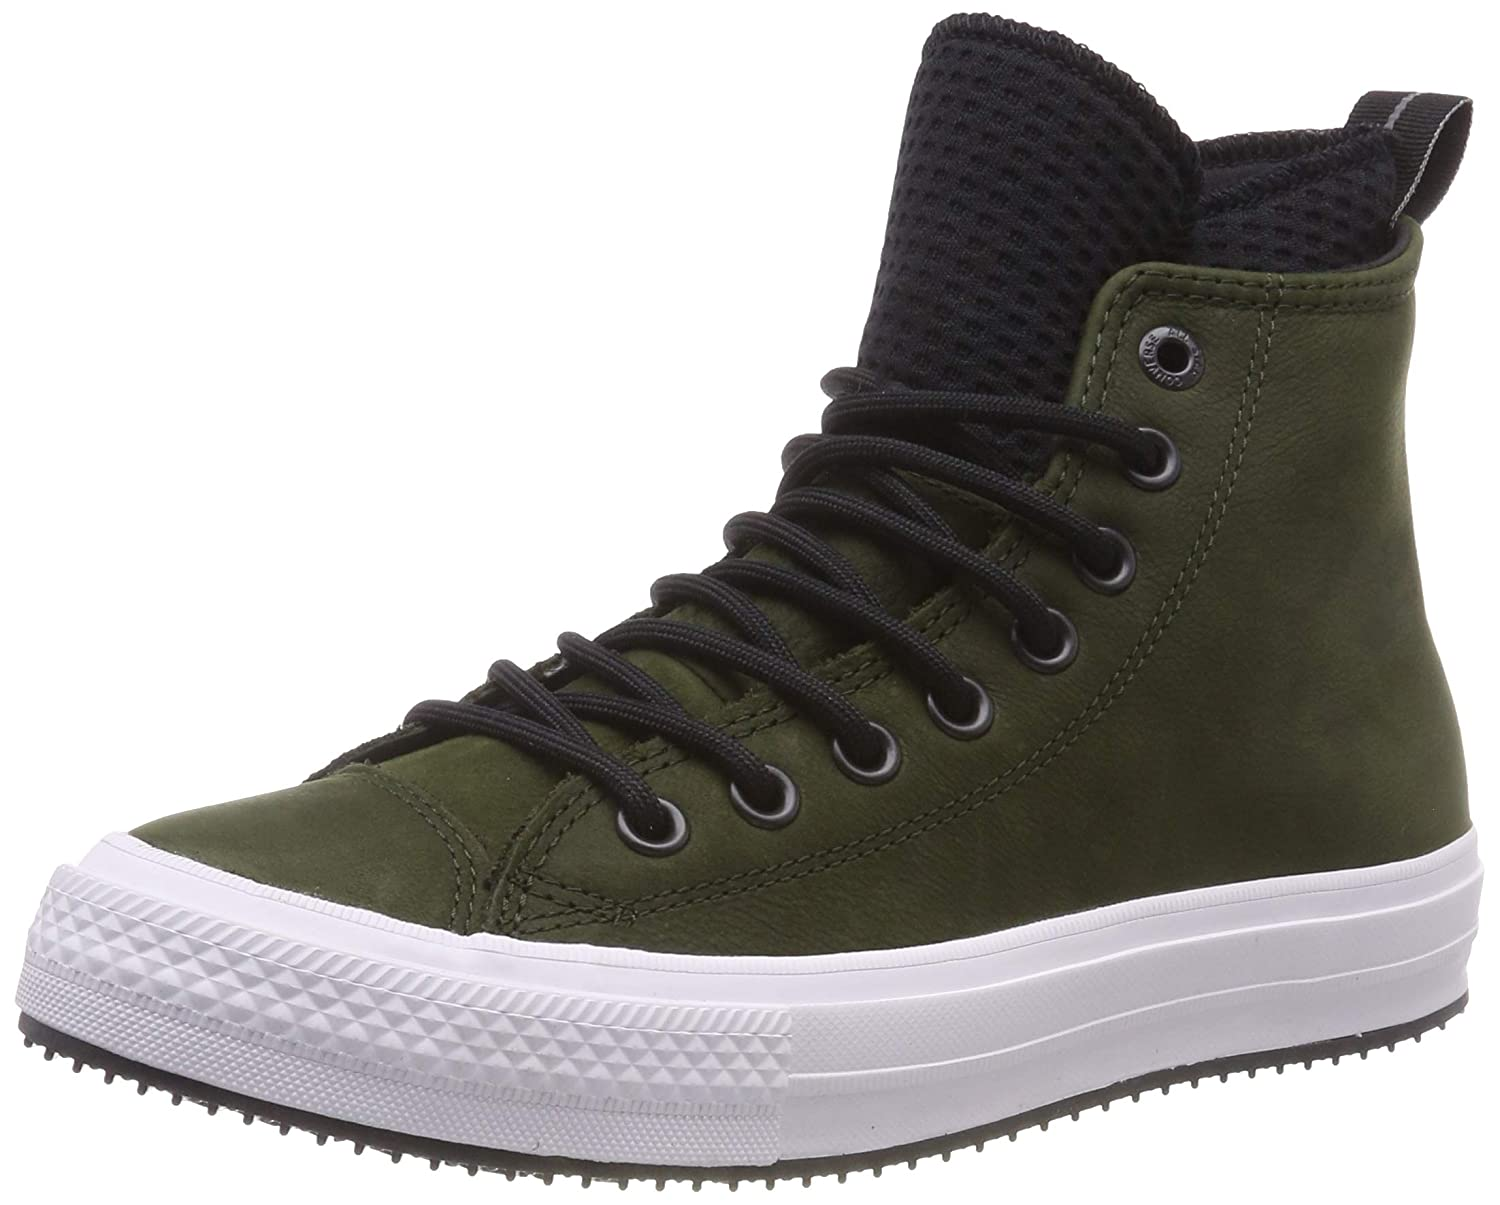 TALLA 37 EU. Converse Chuck Taylor All Star WP Boot, Zapatillas Altas Unisex Adulto, Verde (Utility Green/Black/White 316), 37 EU